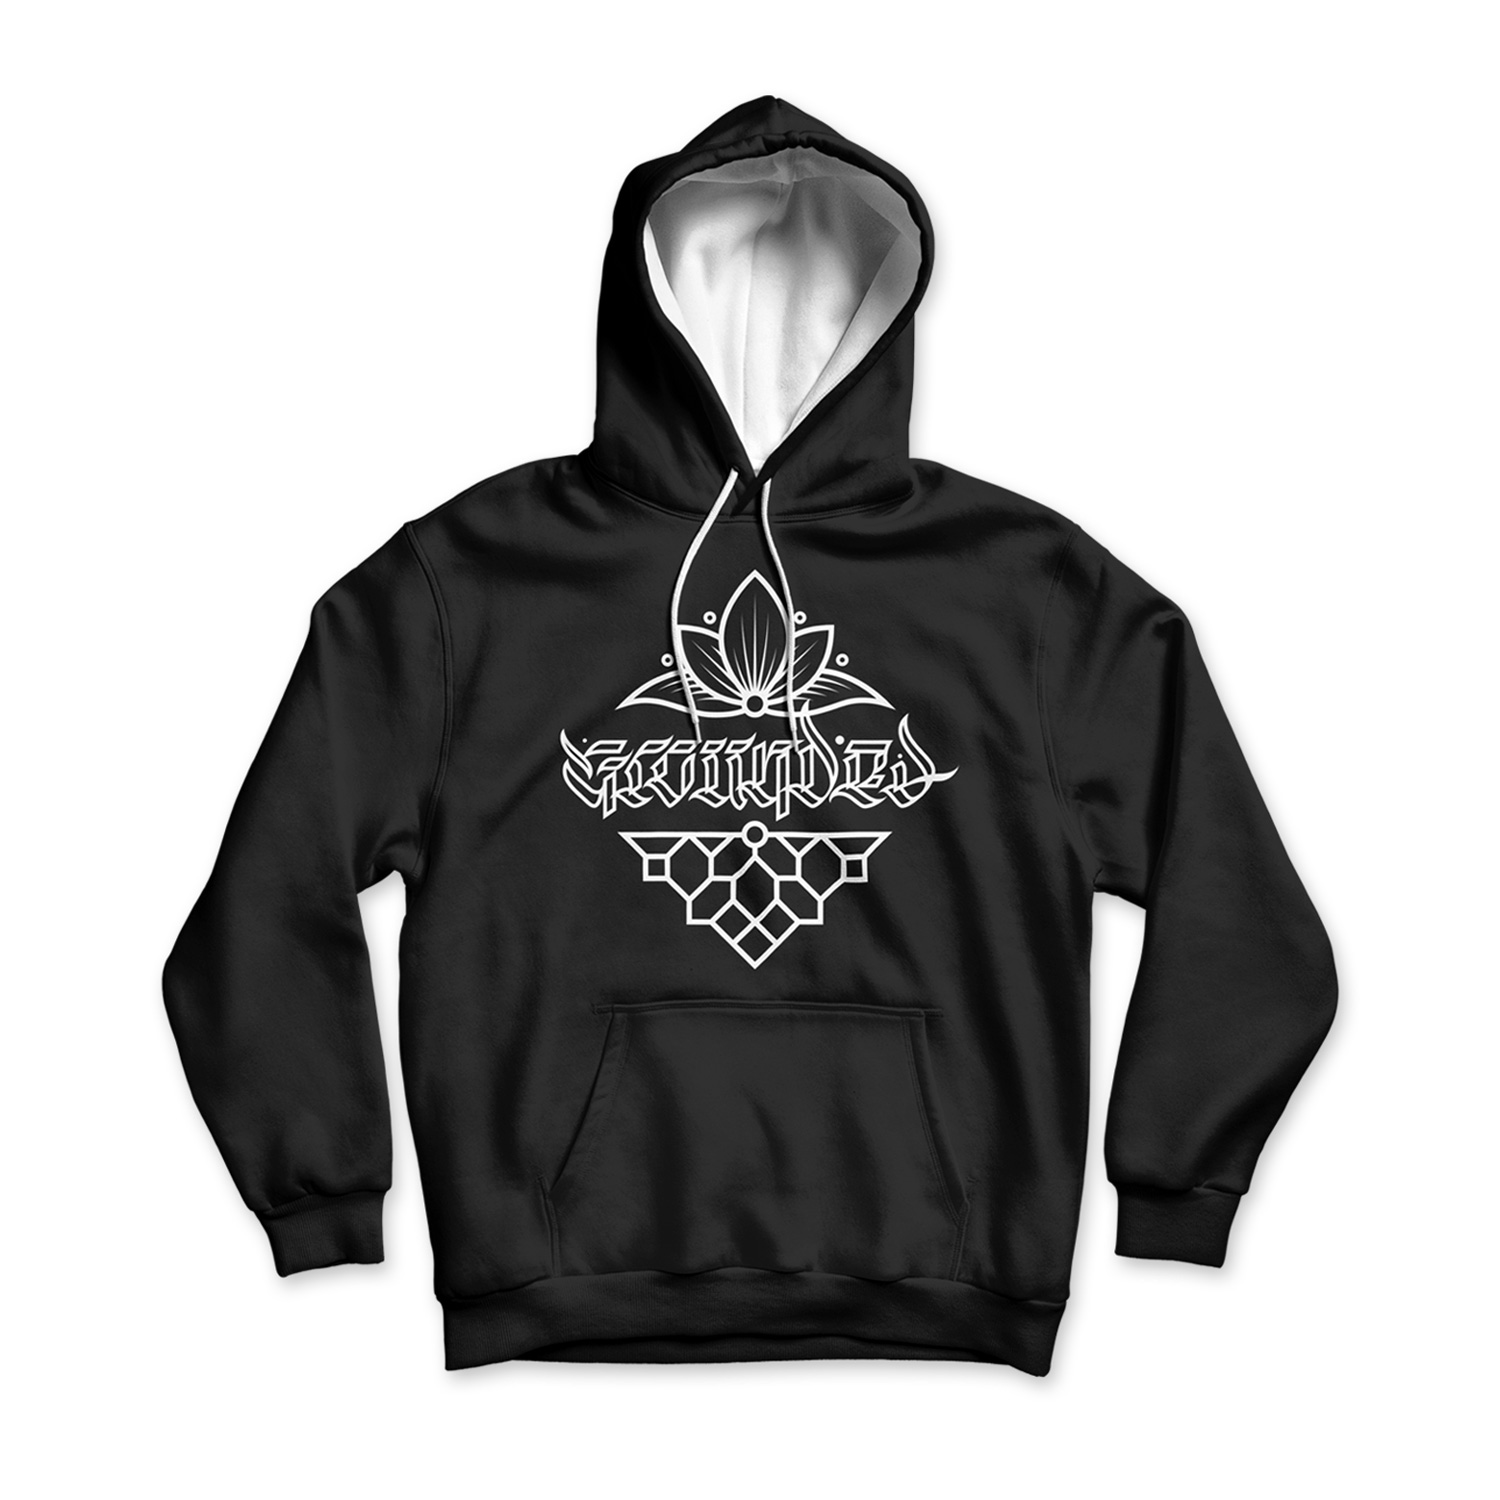 Grounded - Calligraphy Hoody